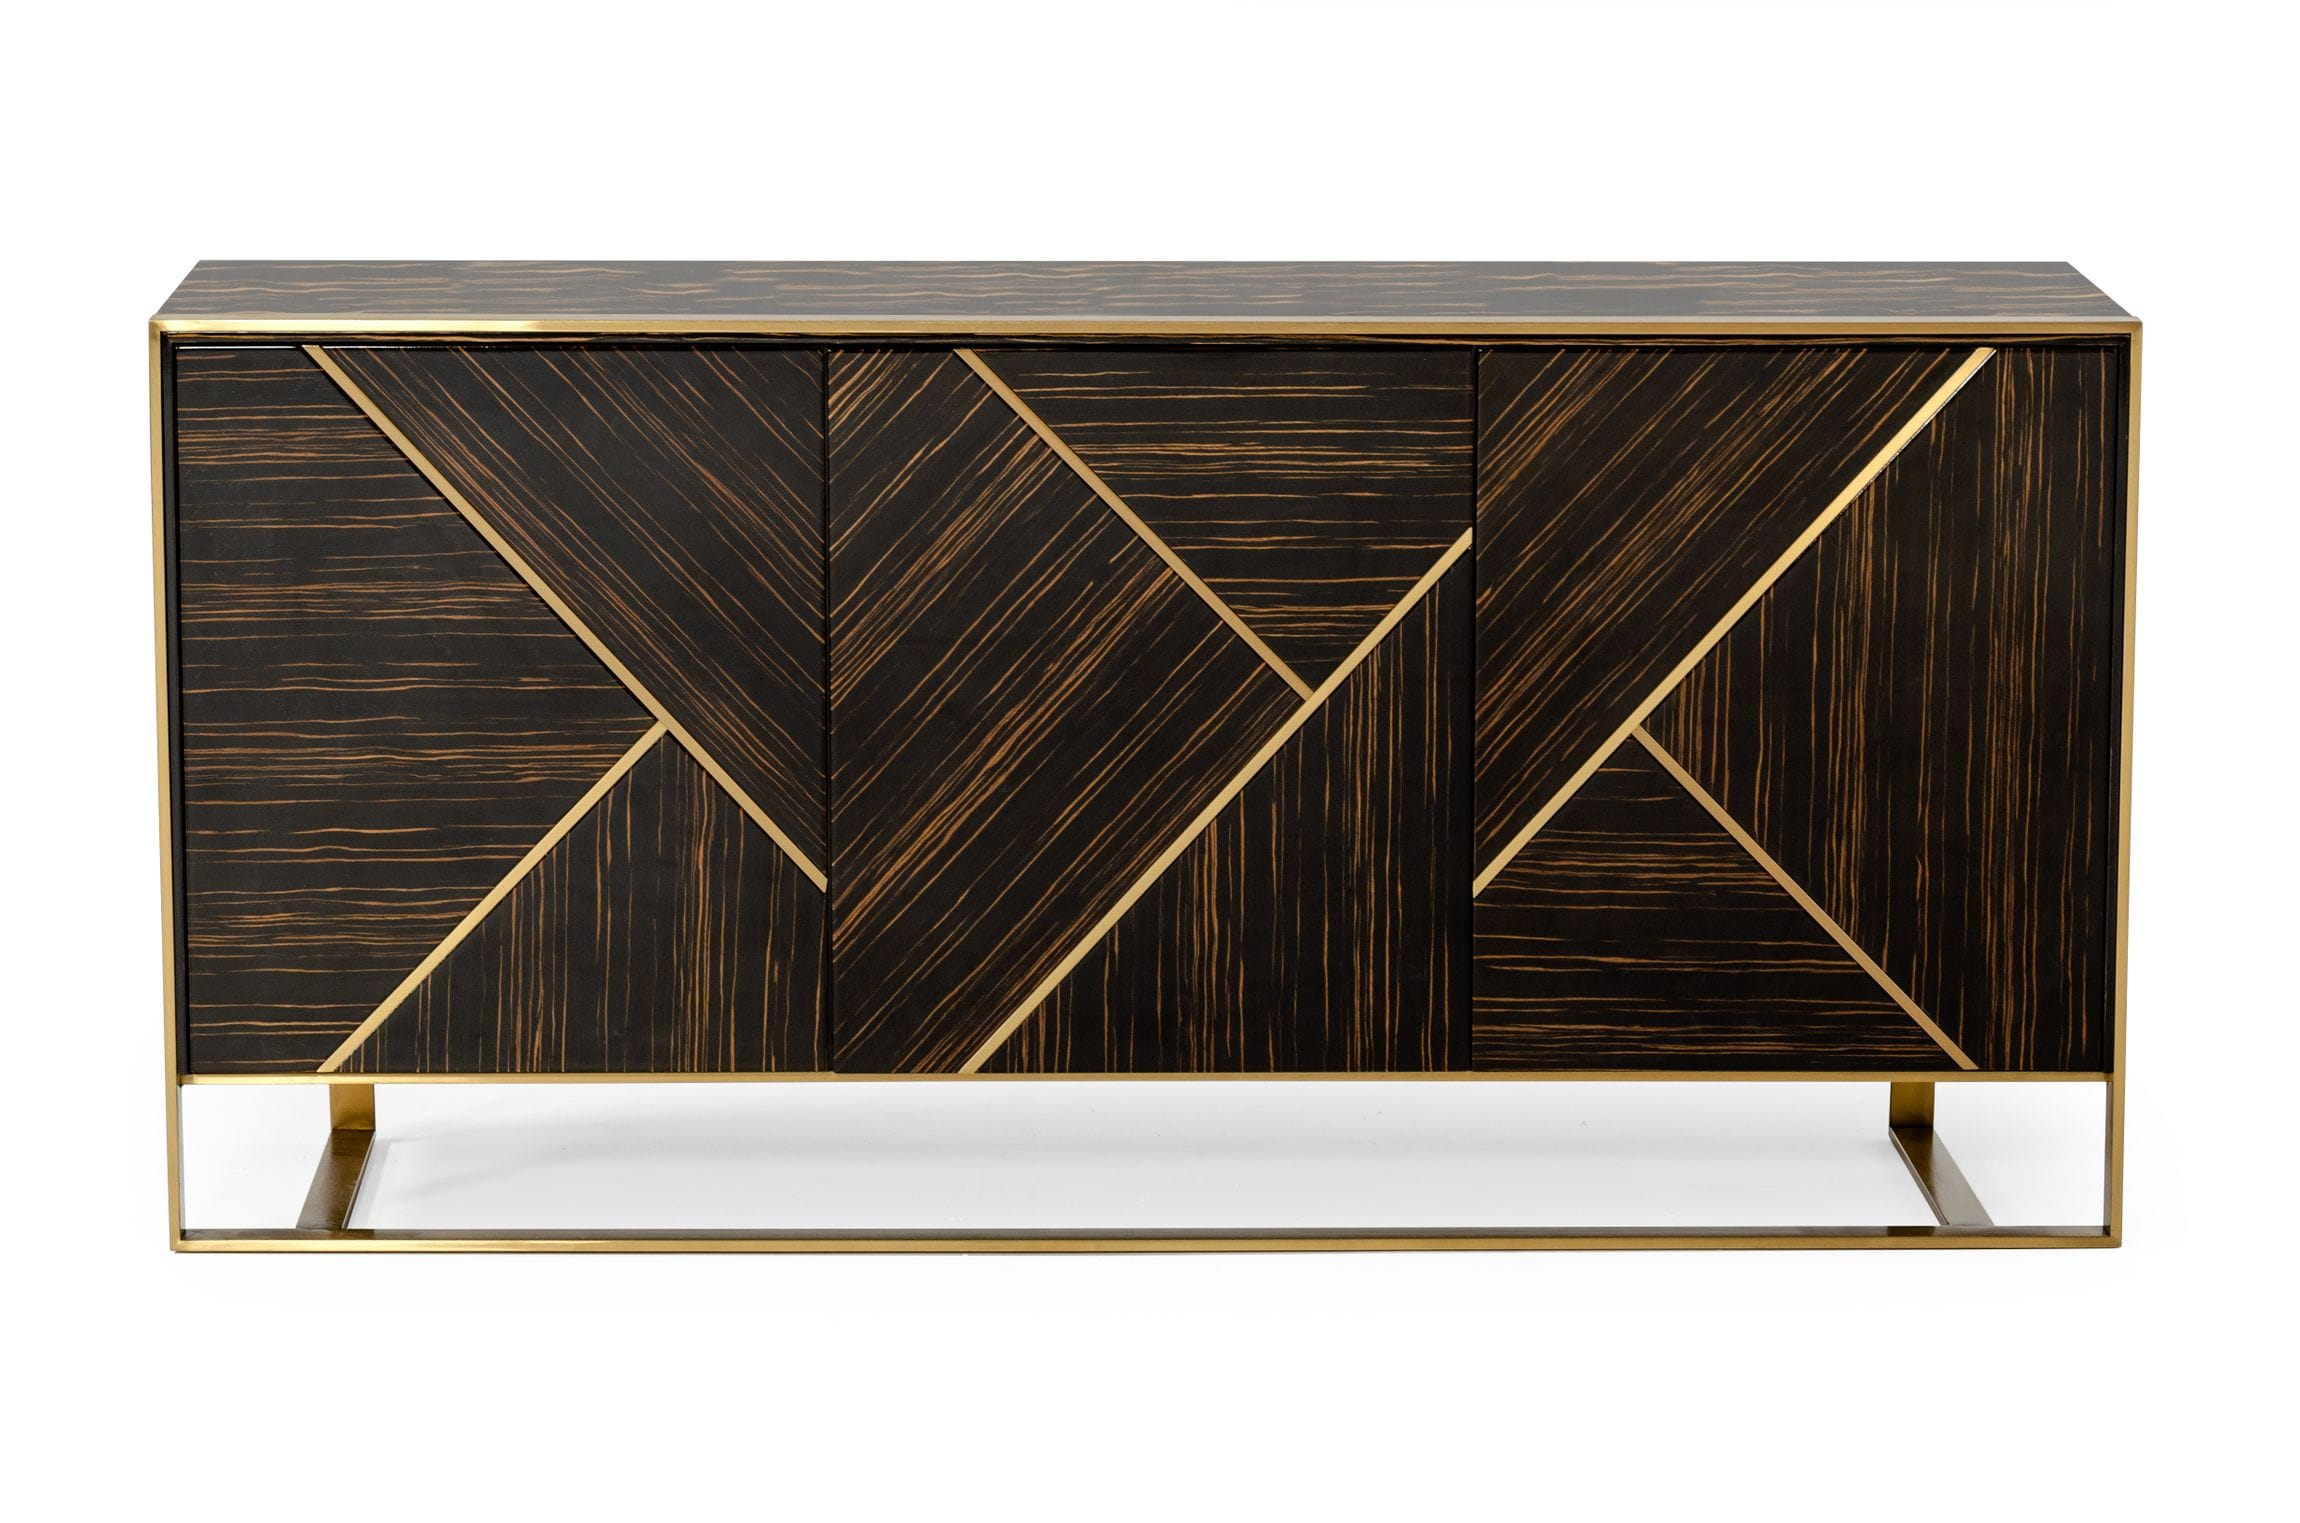 VIG Furniture Modrest Nolte Glam Black Zebrawood and Gold Buffet